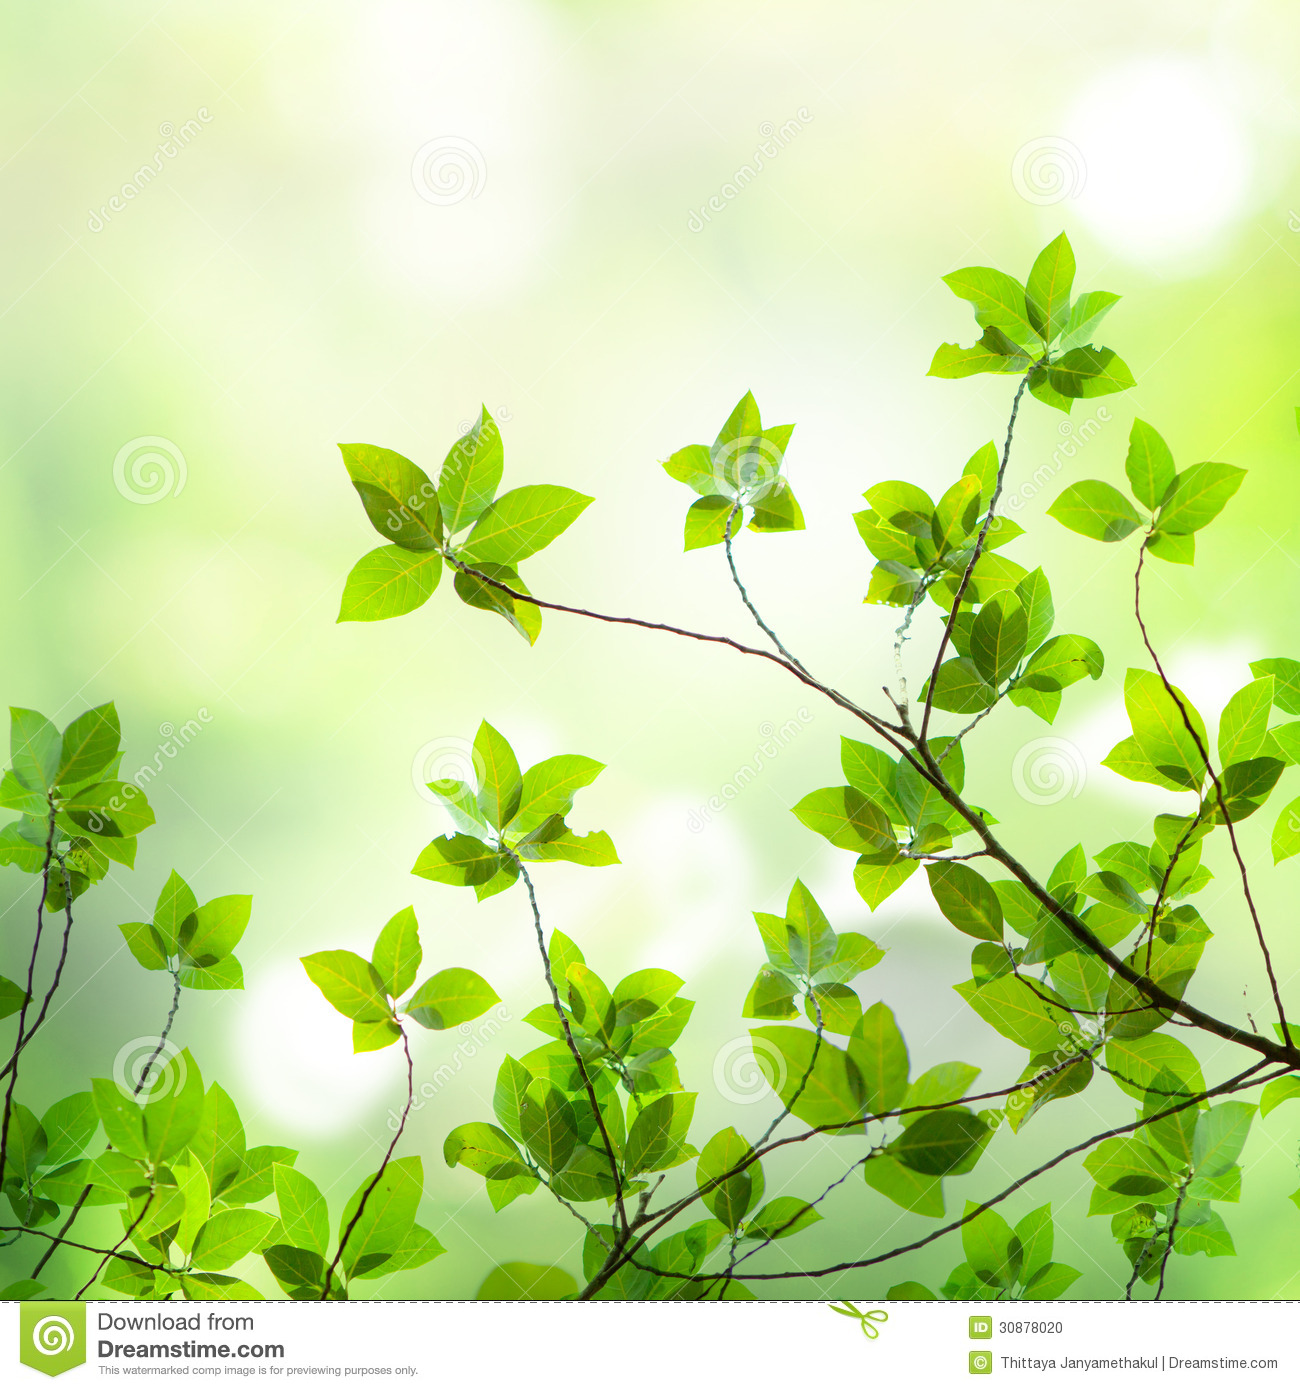 Wallpaper green background - Light through leaf | Color Collection ...